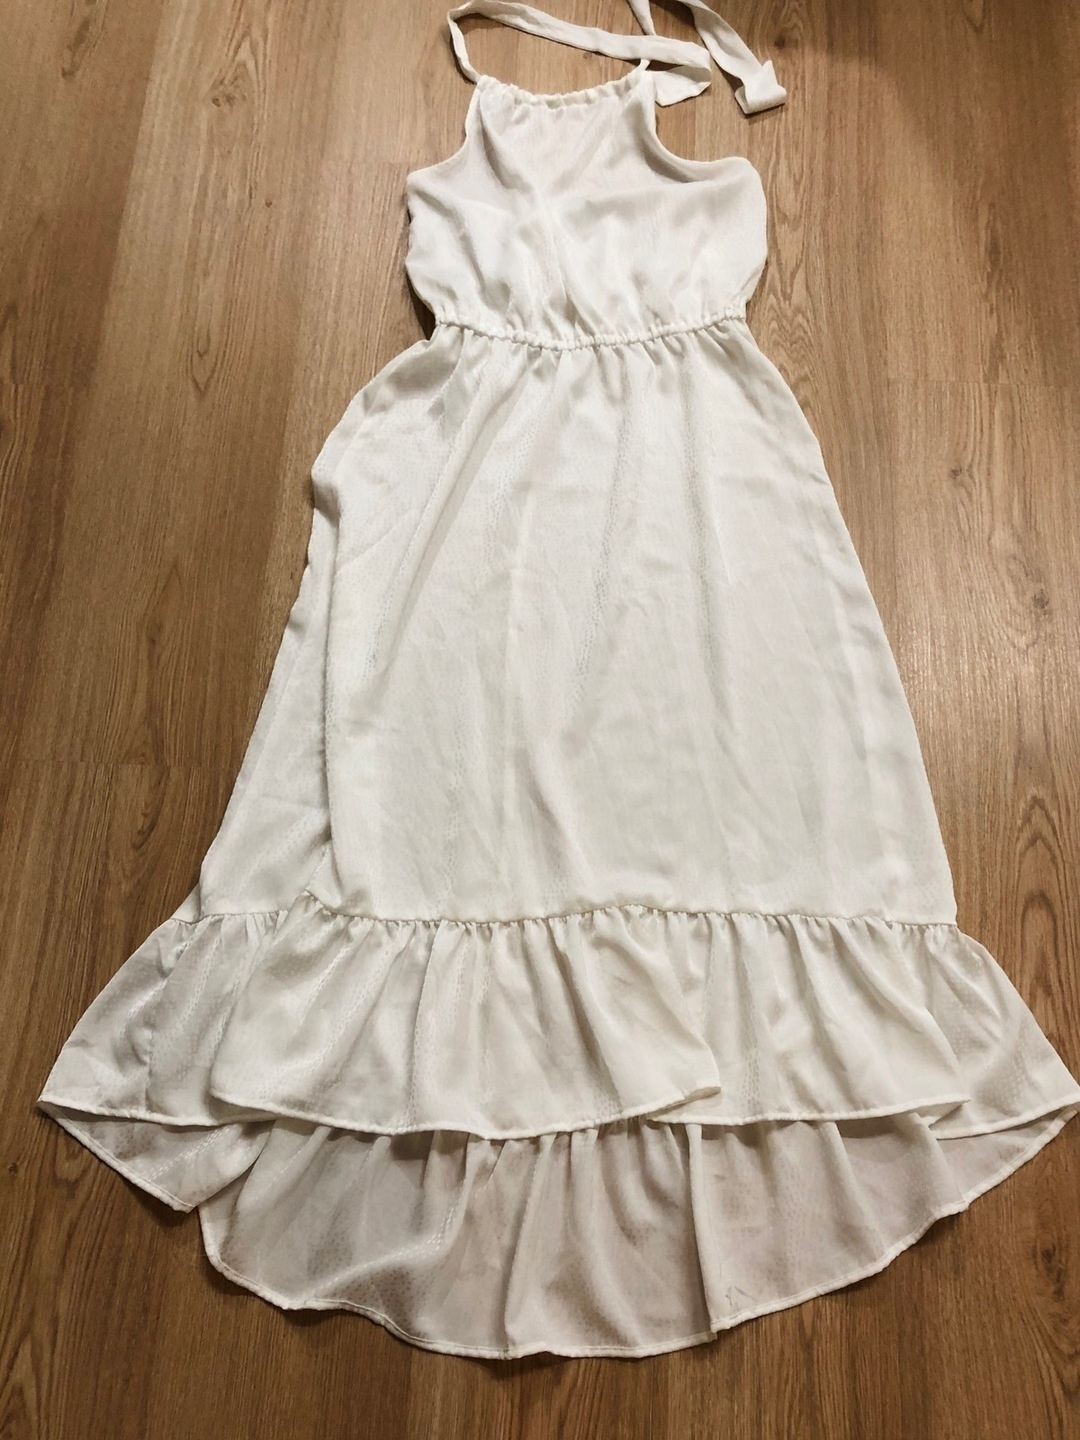 Women's dresses - ONLY photo 4